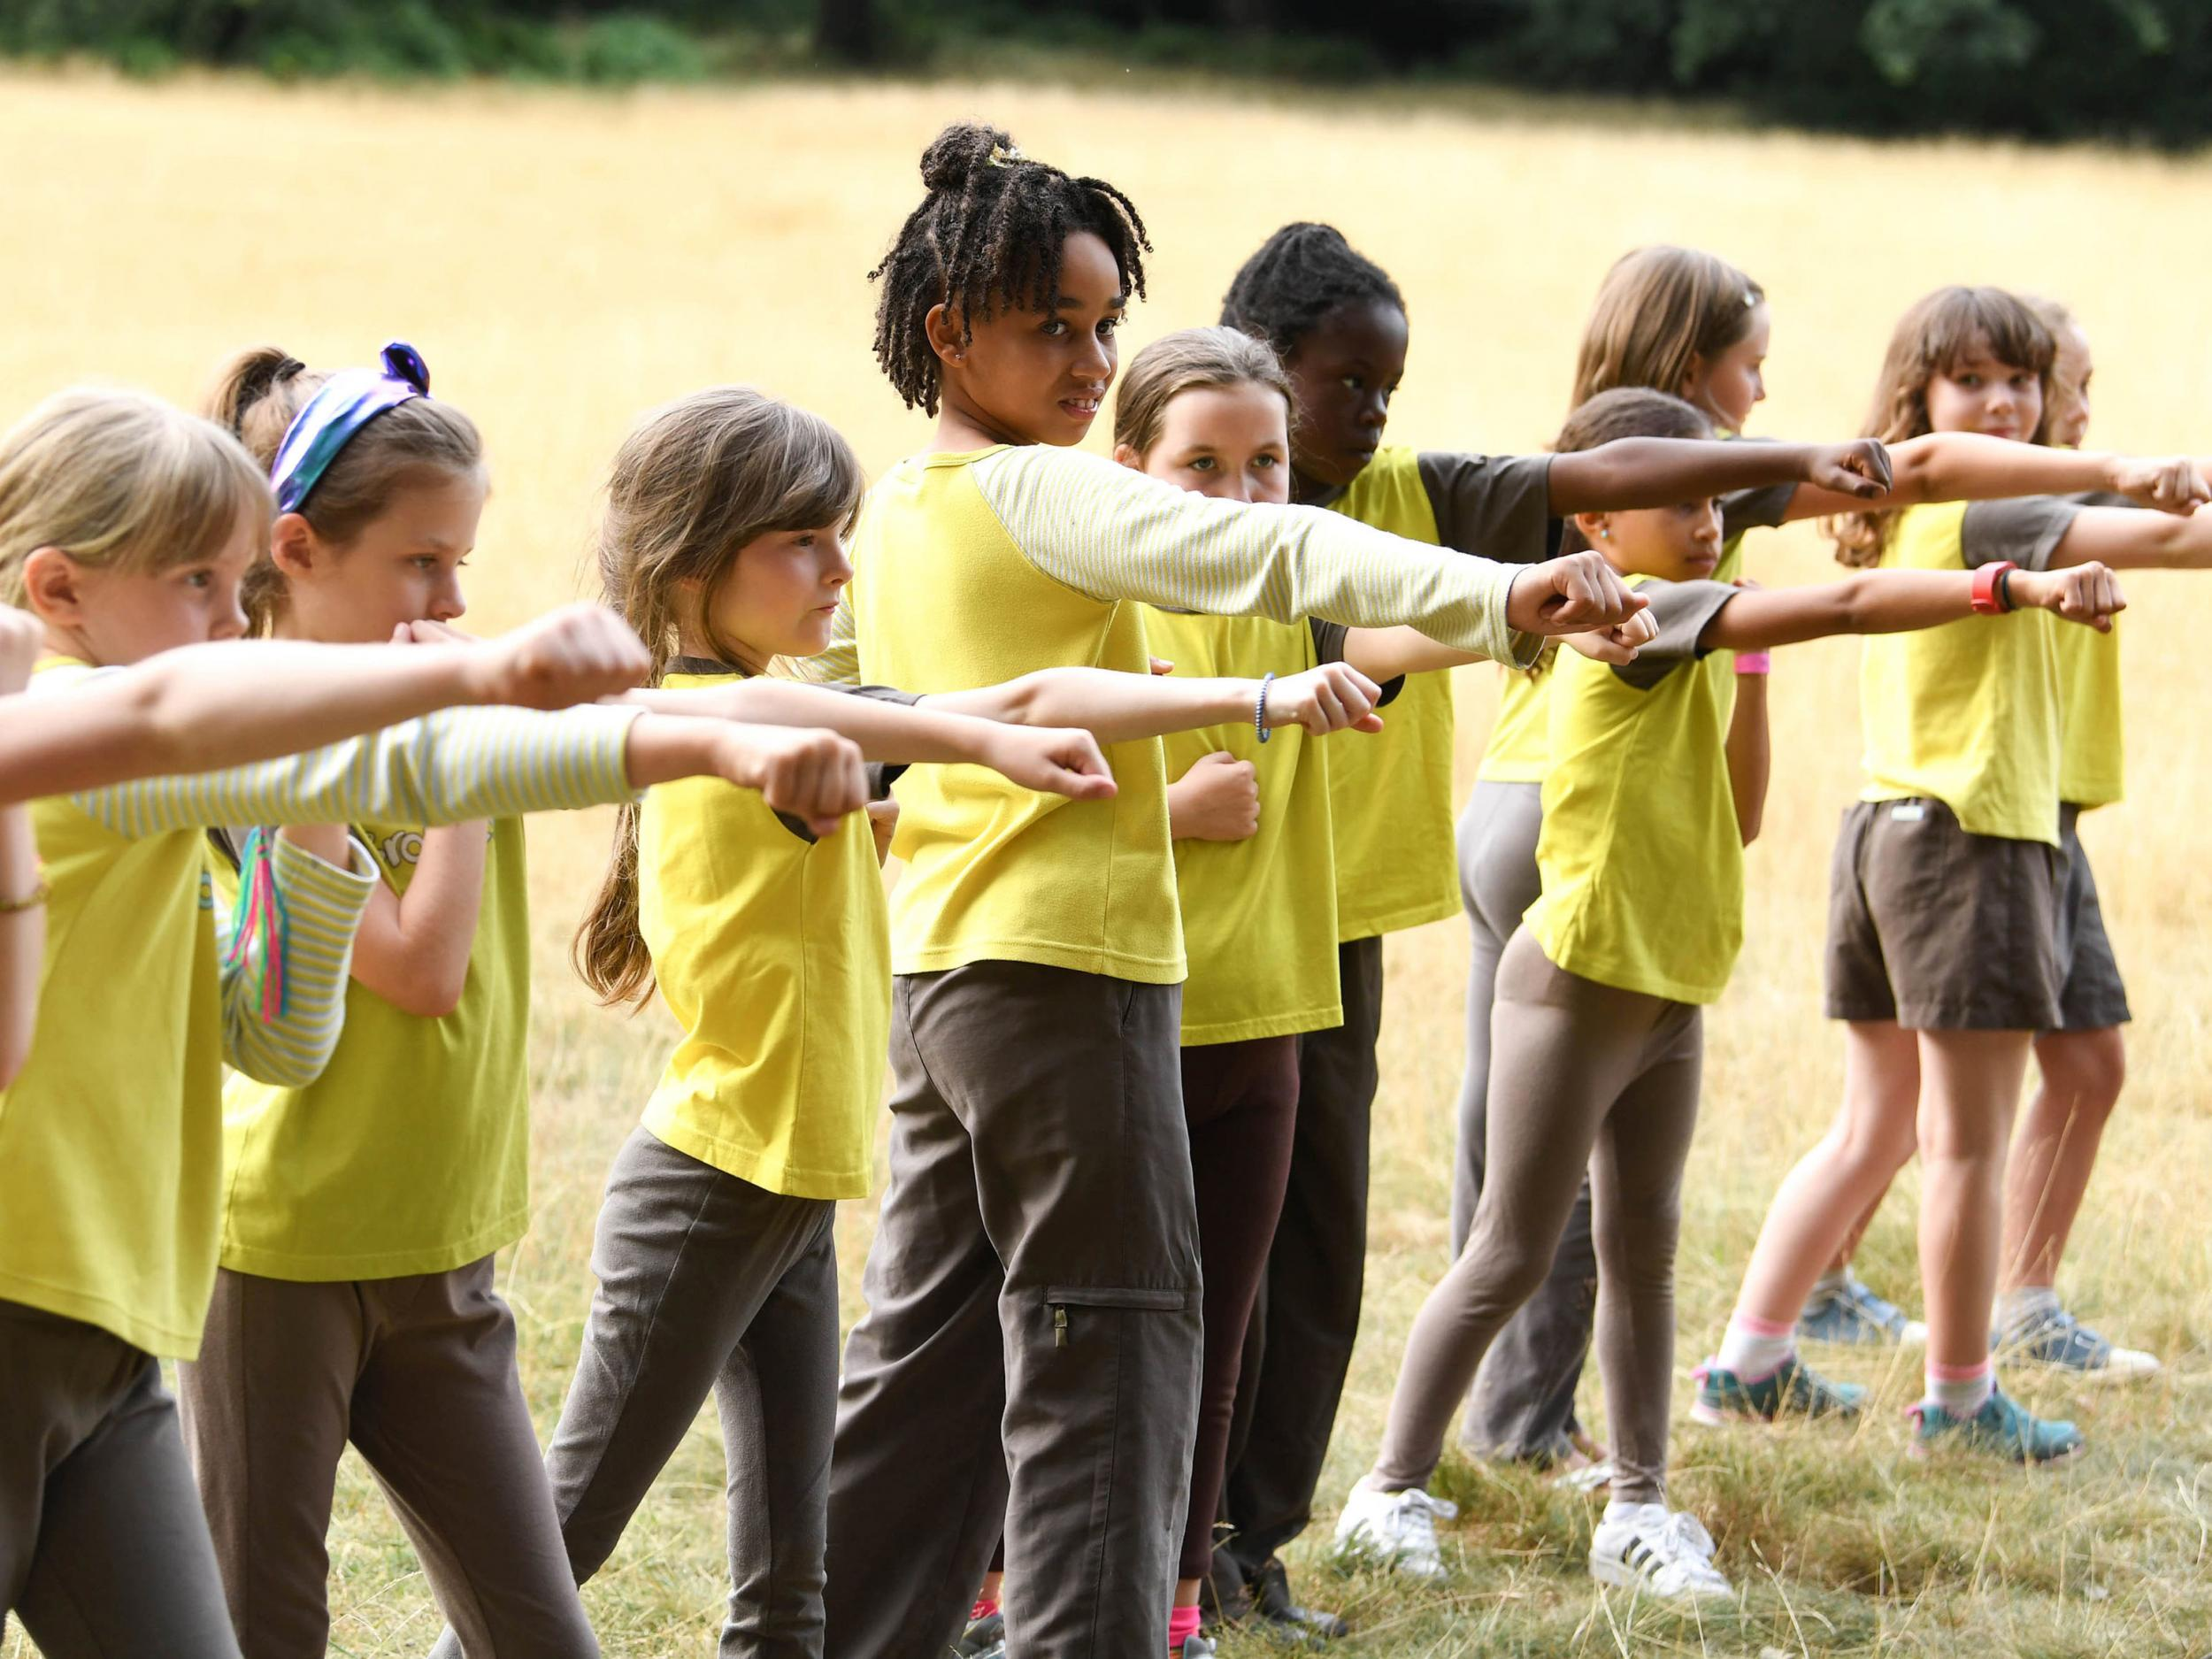 Girl Guides under fire over sponsorship deal with British Army